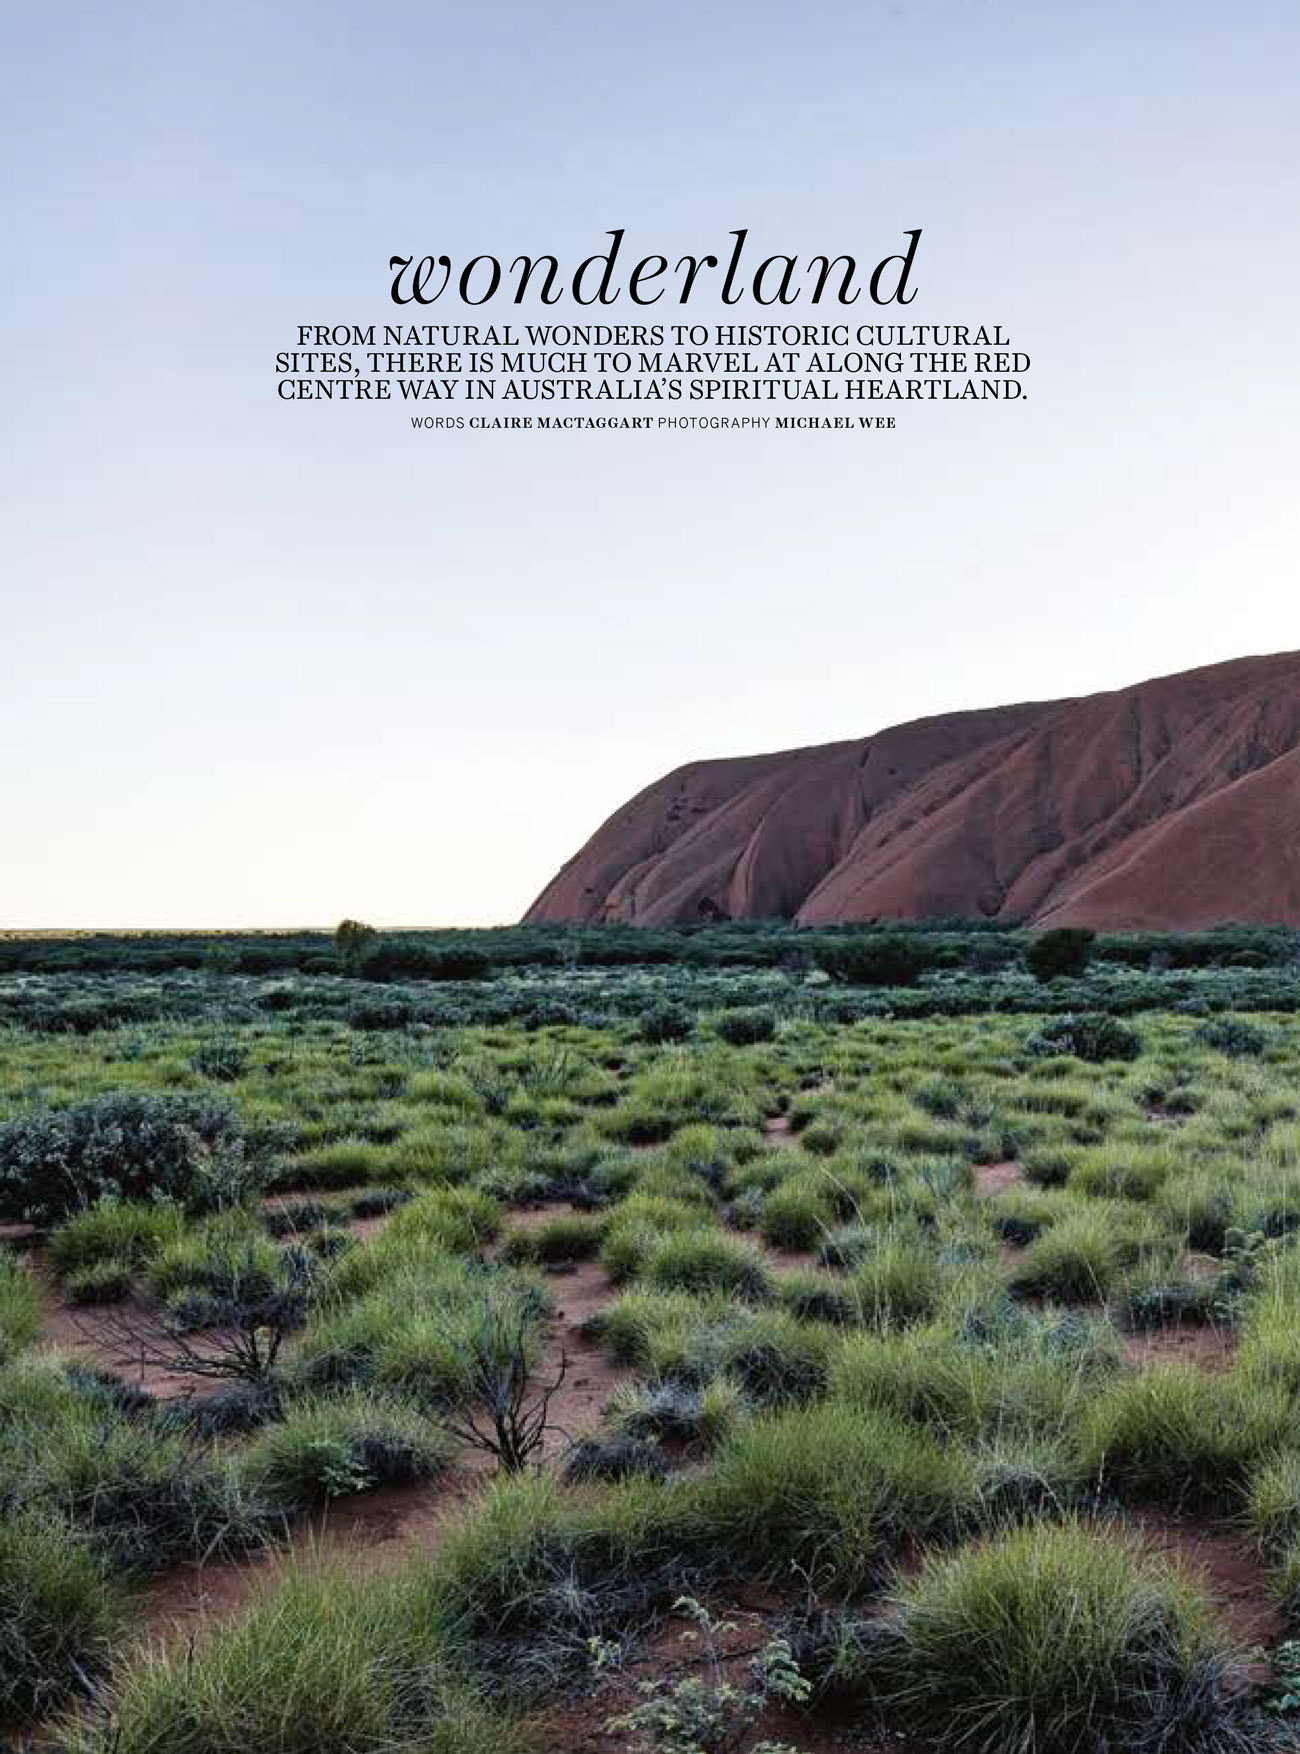 Country Style - May 2017  Red Centre Way NT